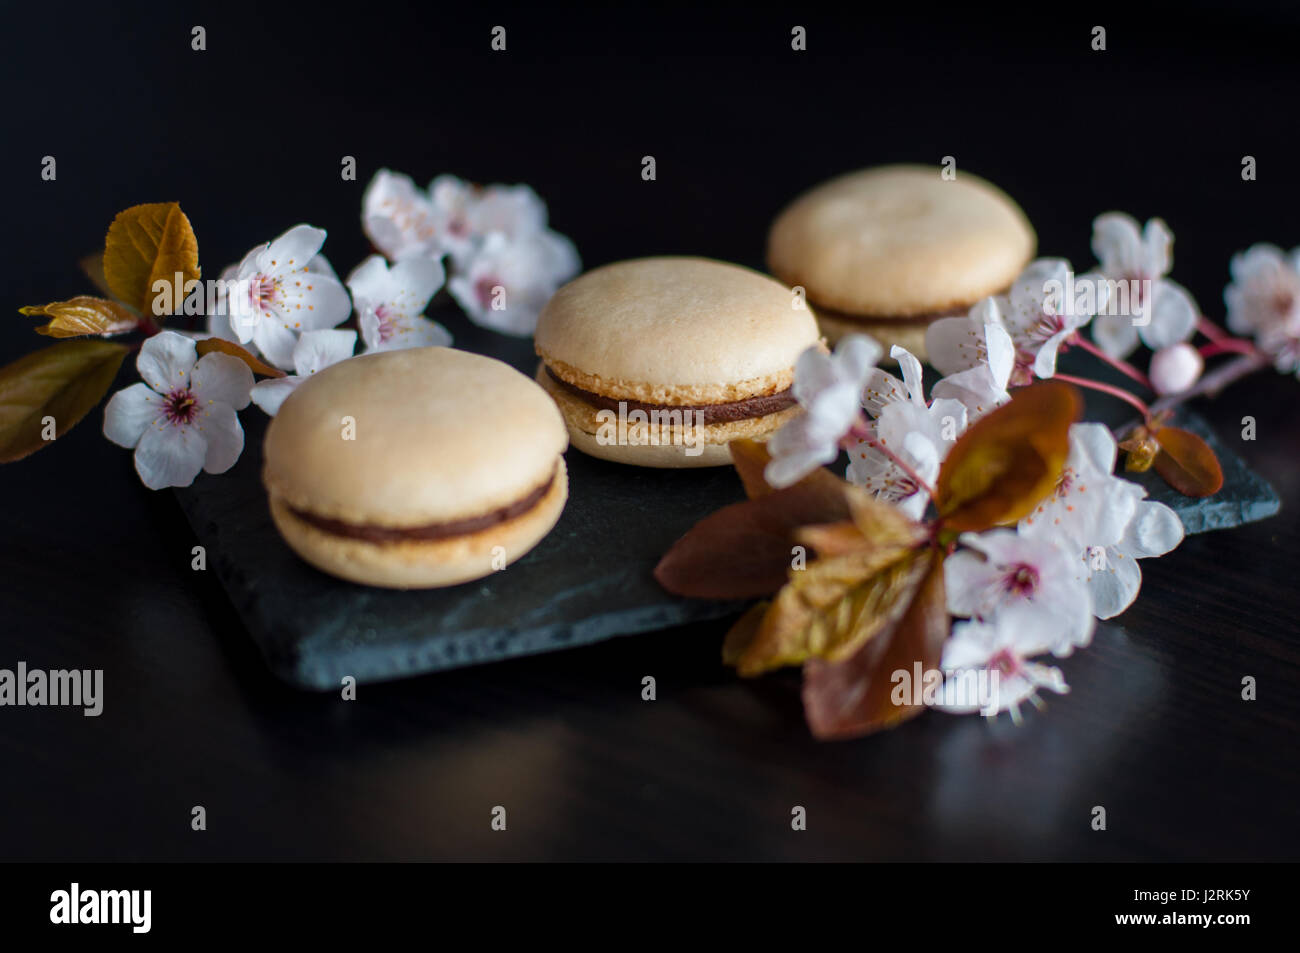 Macaroons decorated with flowers Stock Photo